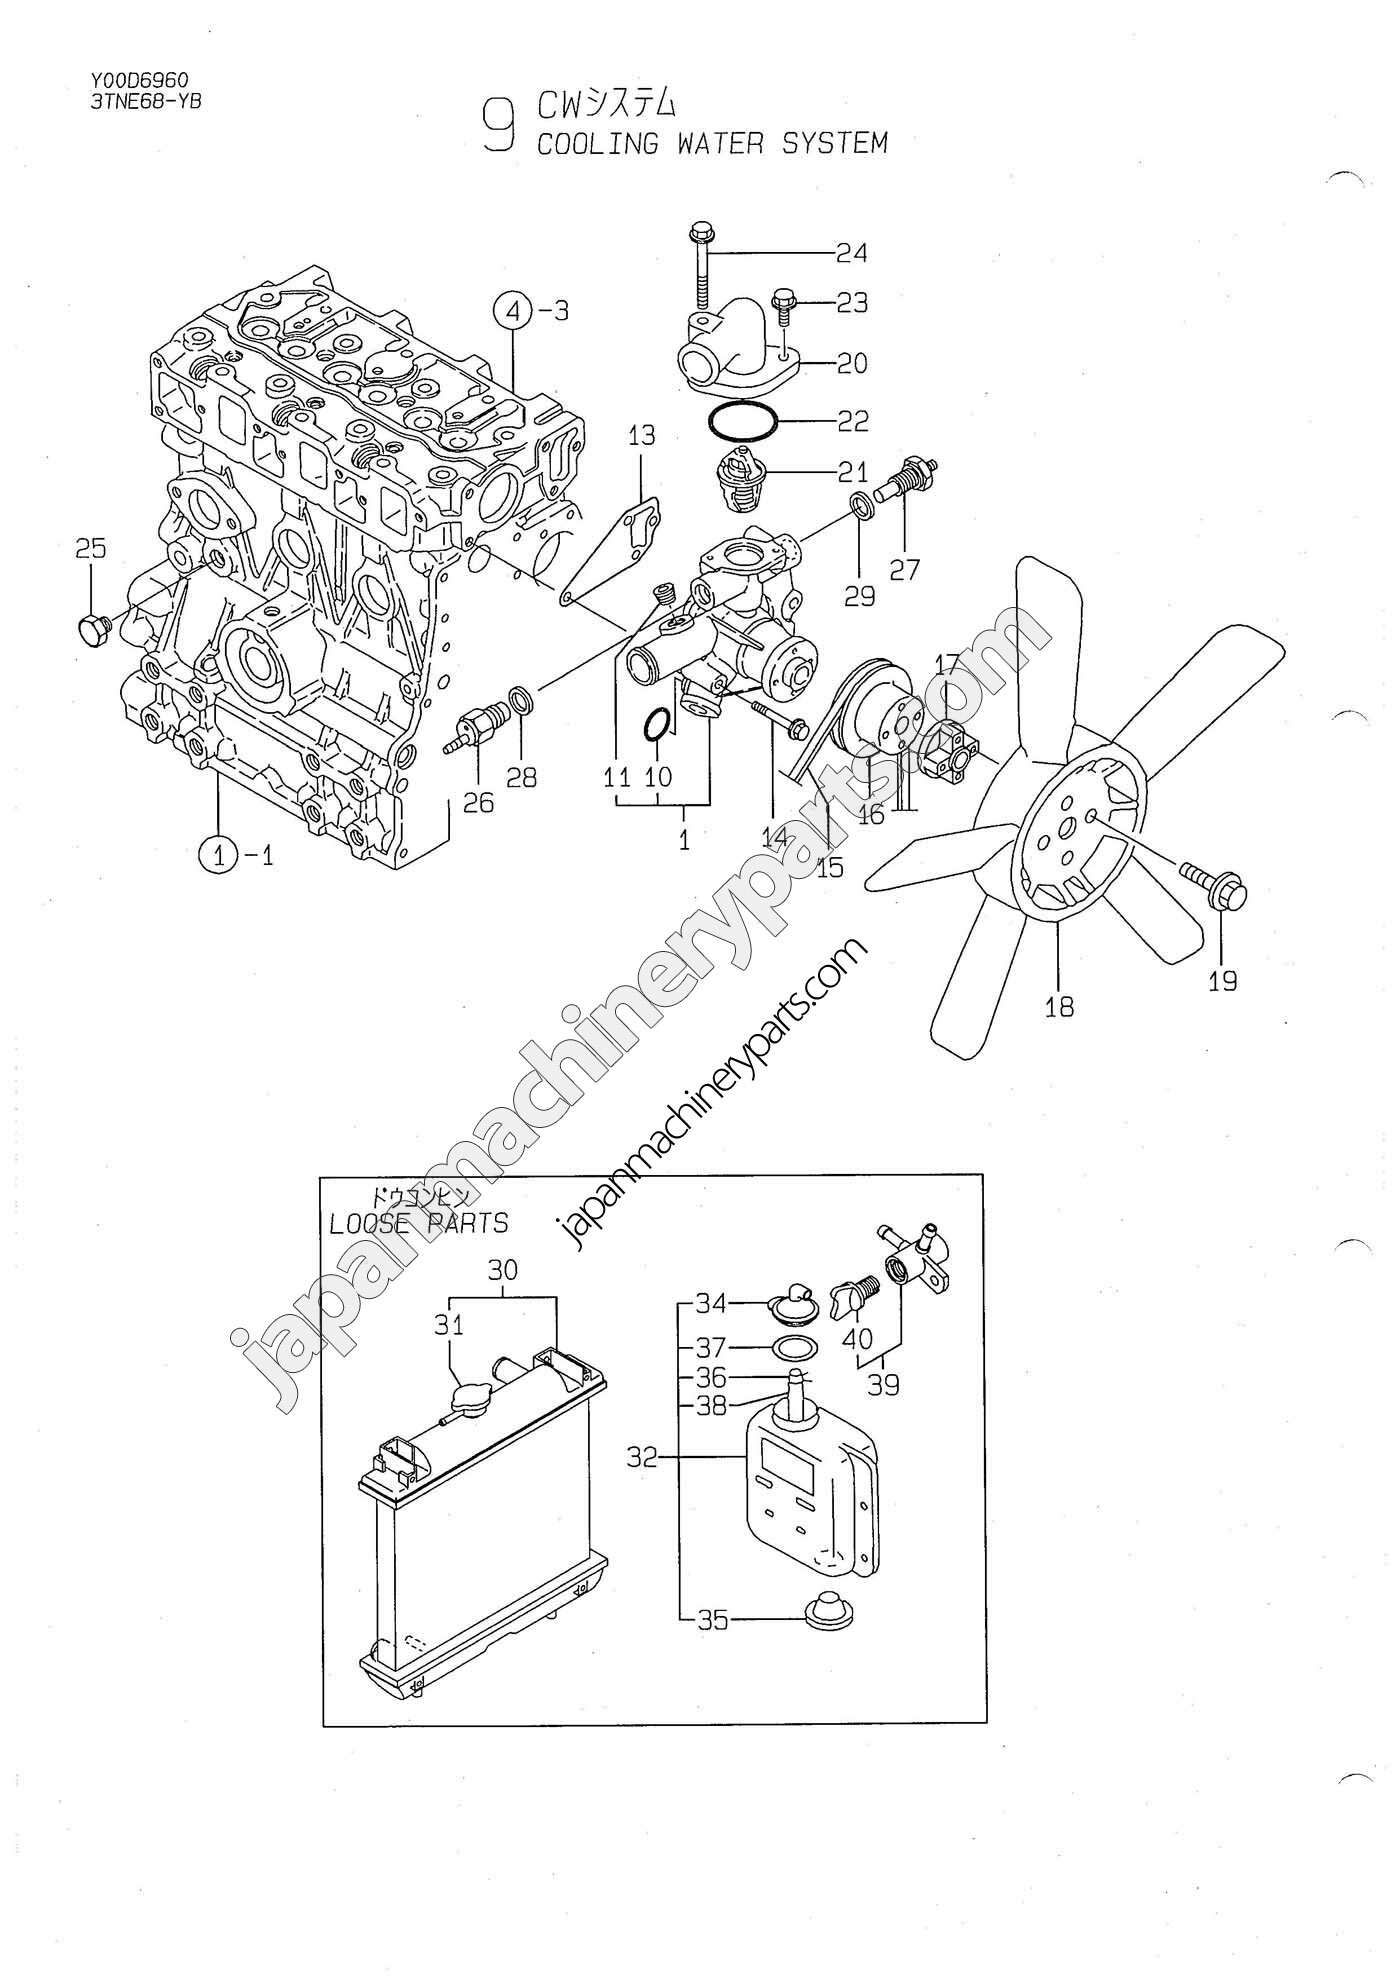 bolens generator wiring diagram iseki engine diagram | online wiring diagram